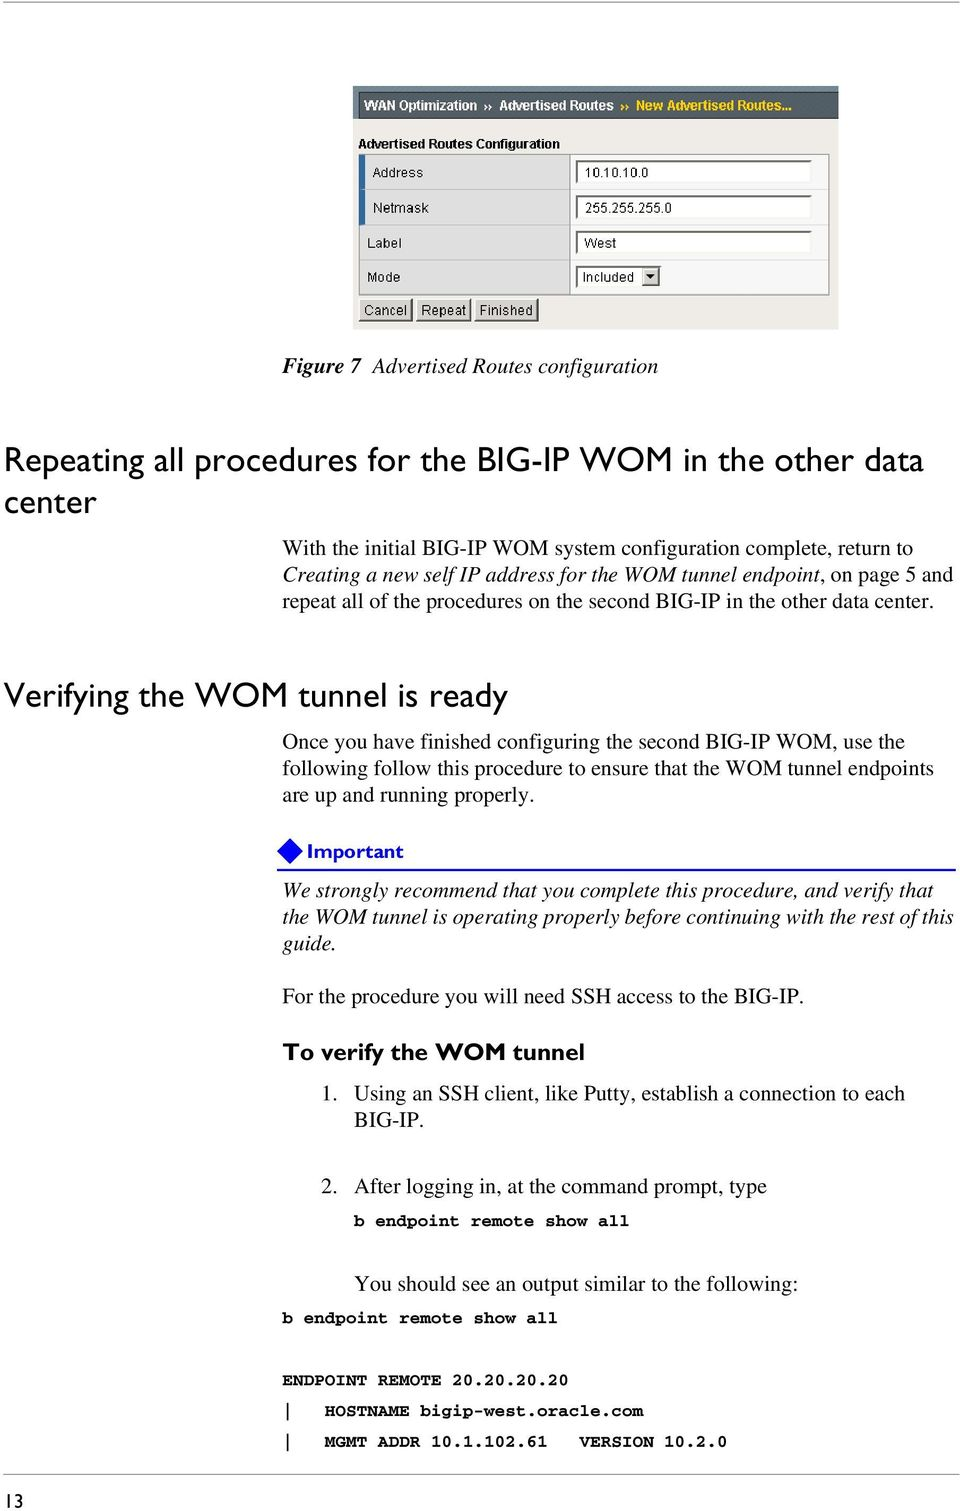 Verifying the WOM tunnel is ready Once you have finished configuring the second BIG-IP WOM, use the following follow this procedure to ensure that the WOM tunnel endpoints are up and running properly.